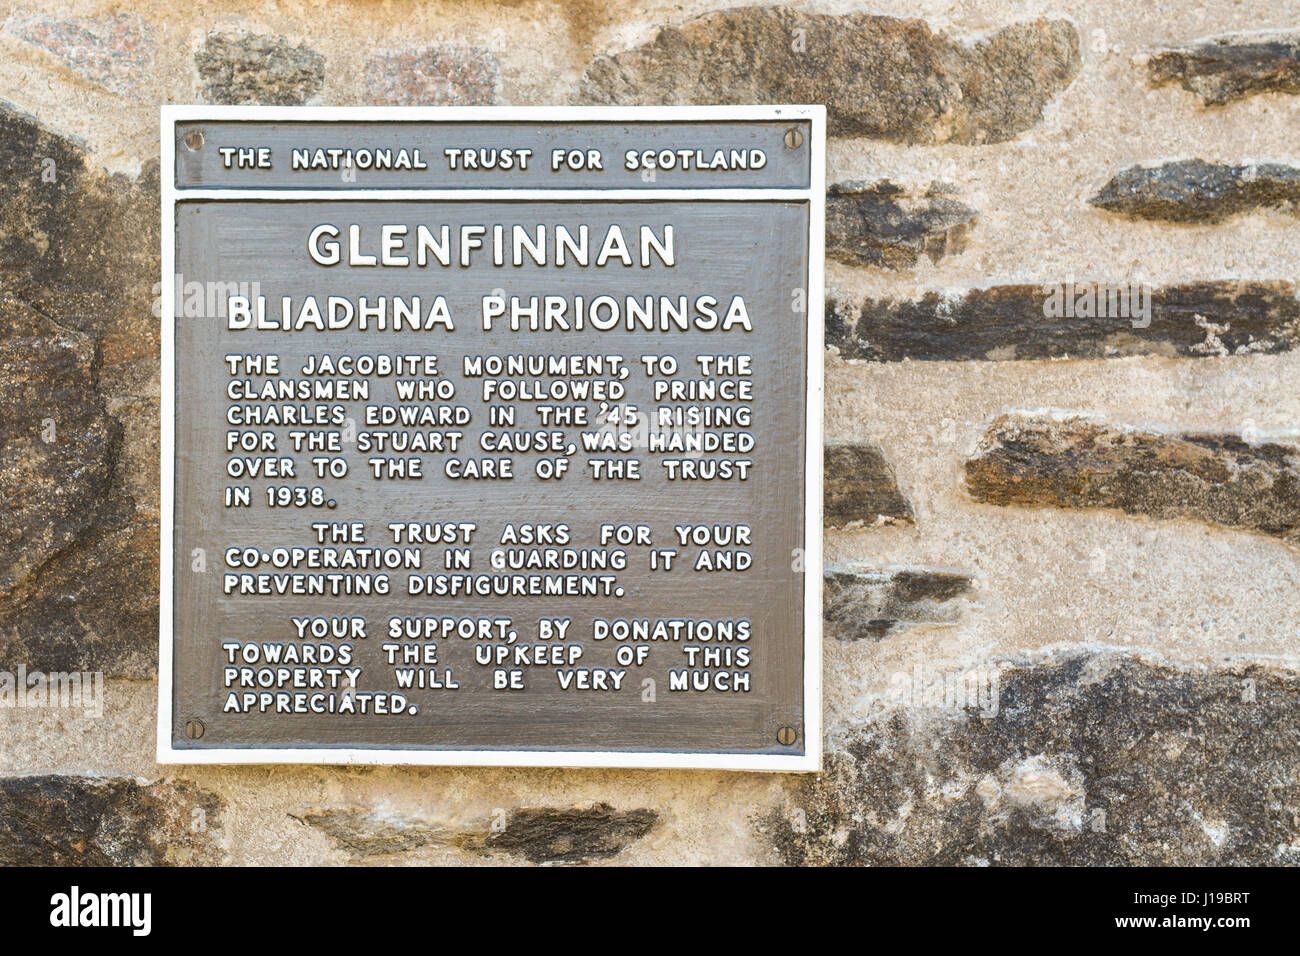 Glenfinnan Monument plaque sign Photo Stock